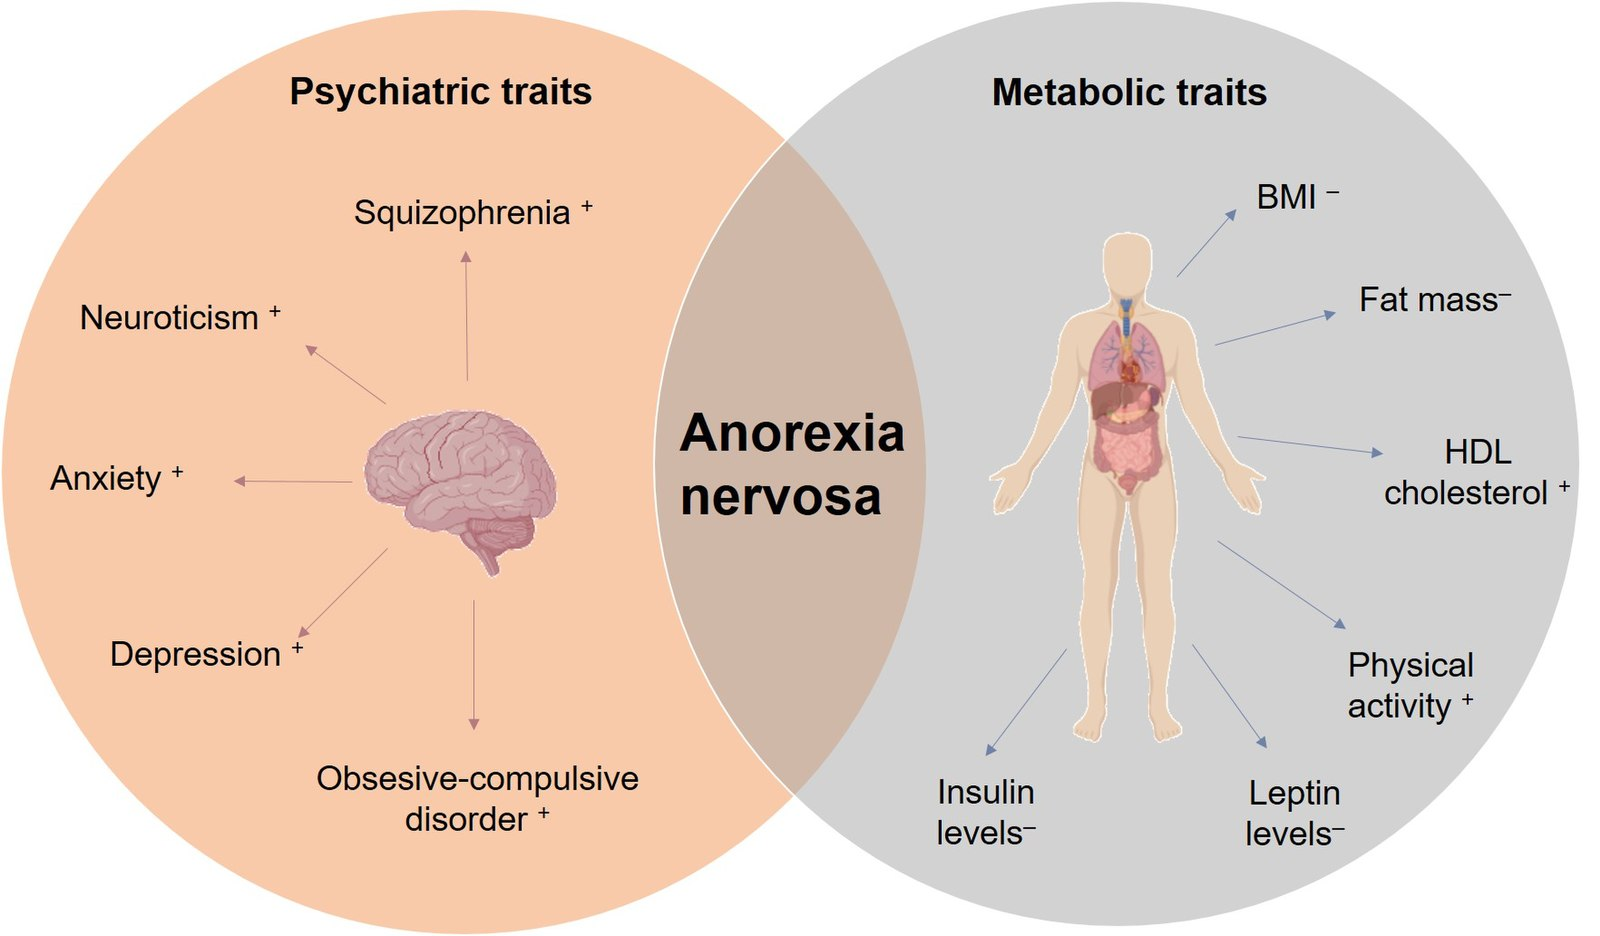 Difference between ARFID and Anorexia nervosa